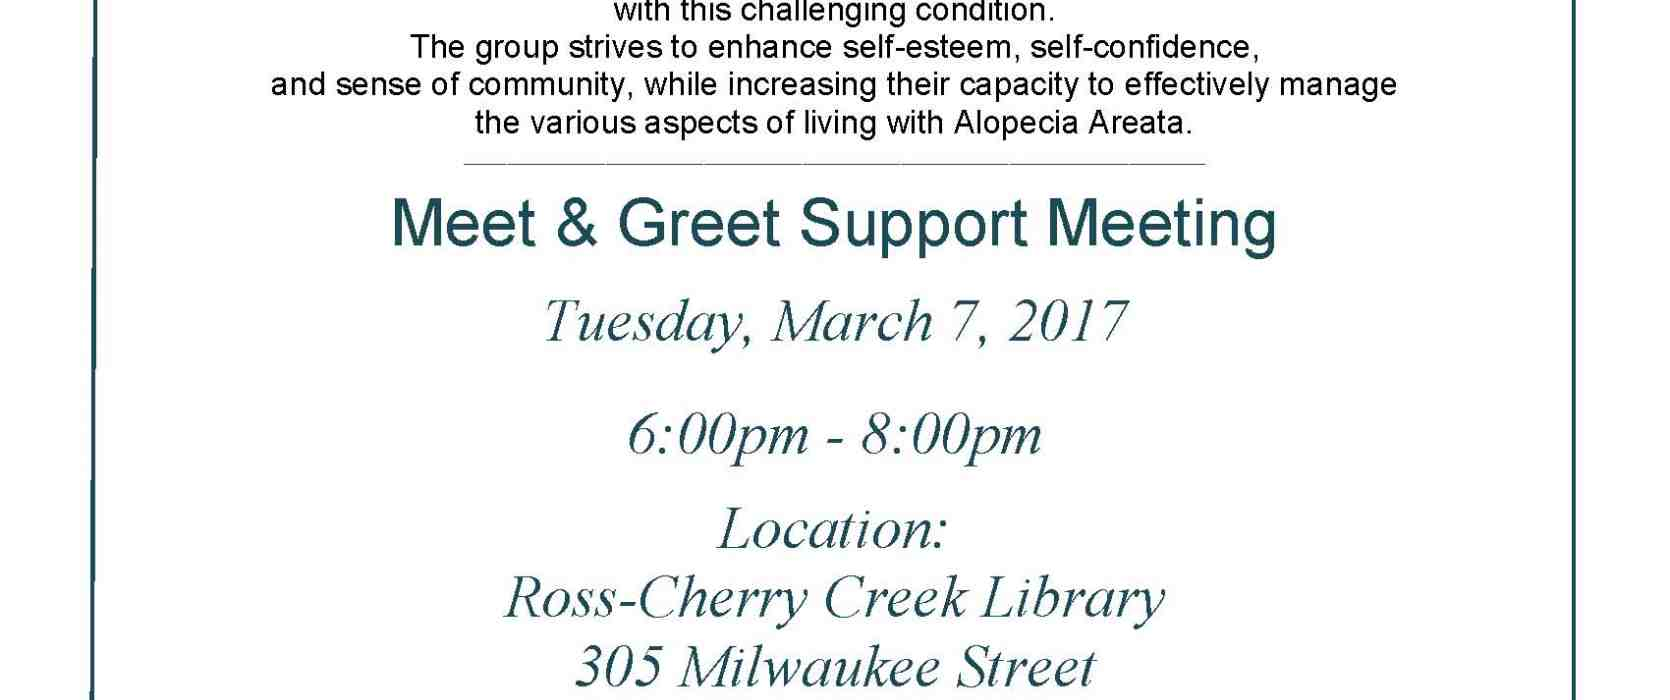 Denver Co Alopecia Areata Adult Support Group Meeting